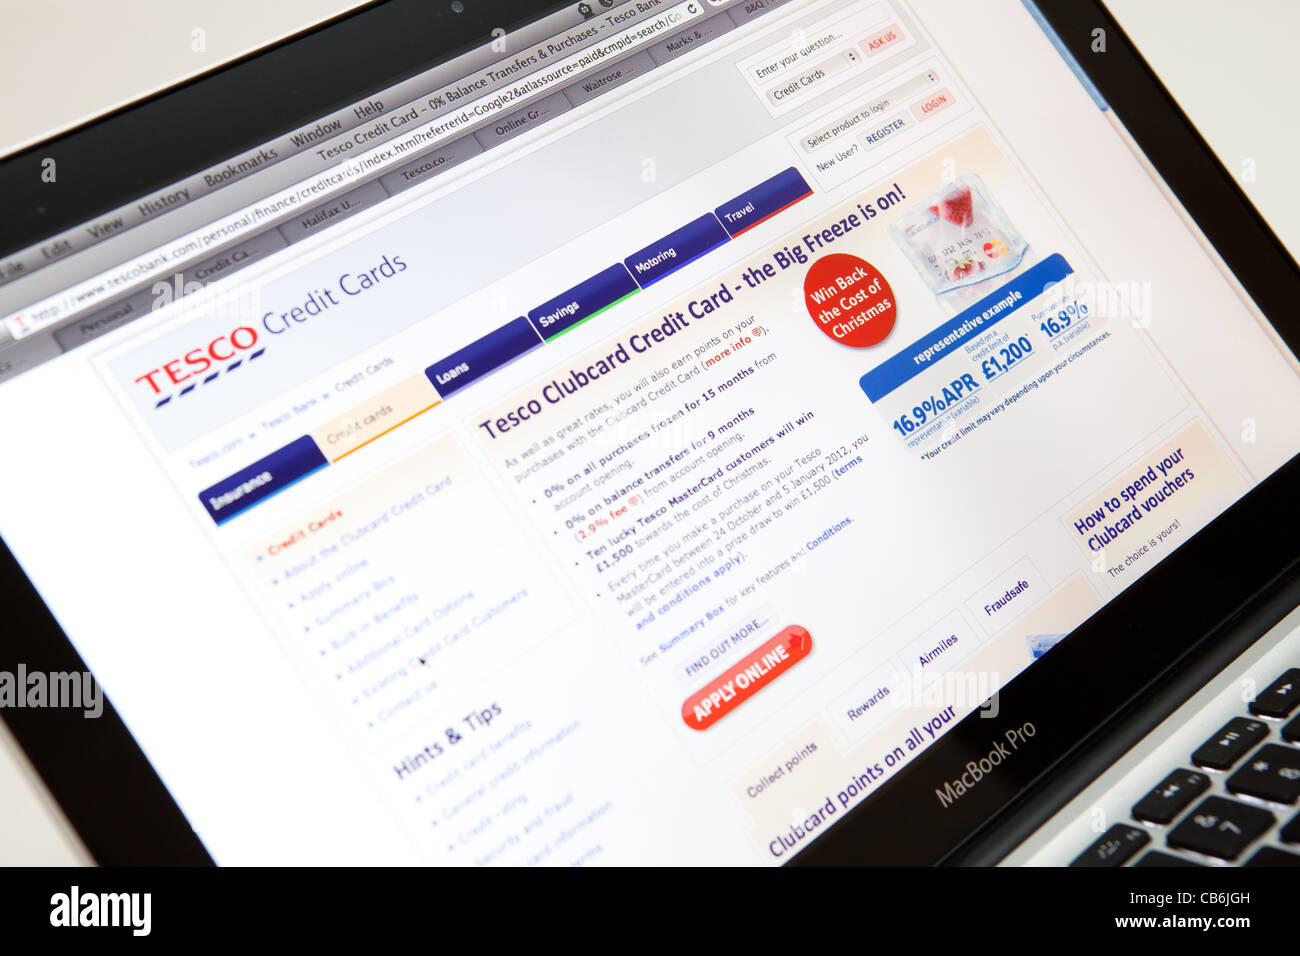 TESCO Website Screen shot of web page - Stock Image